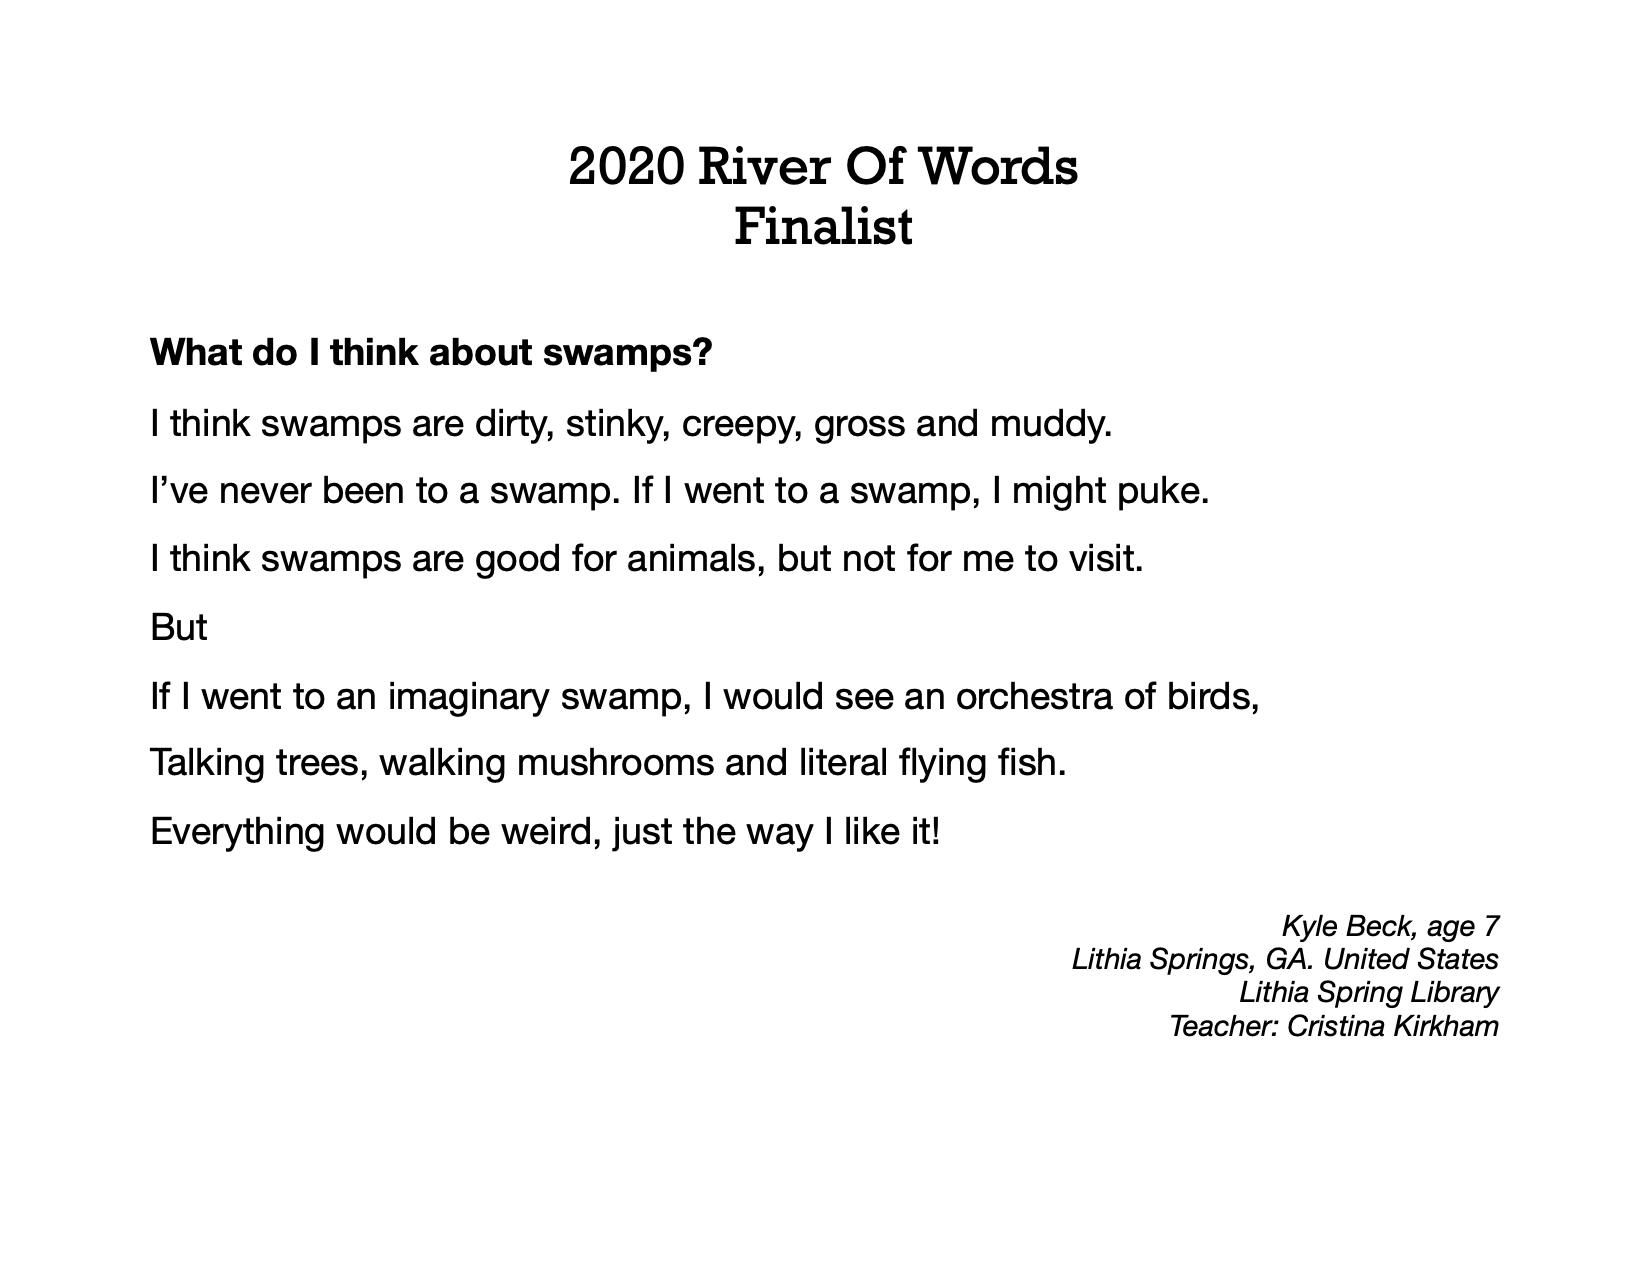 2020 River of Words Poetry Winners and Finalists